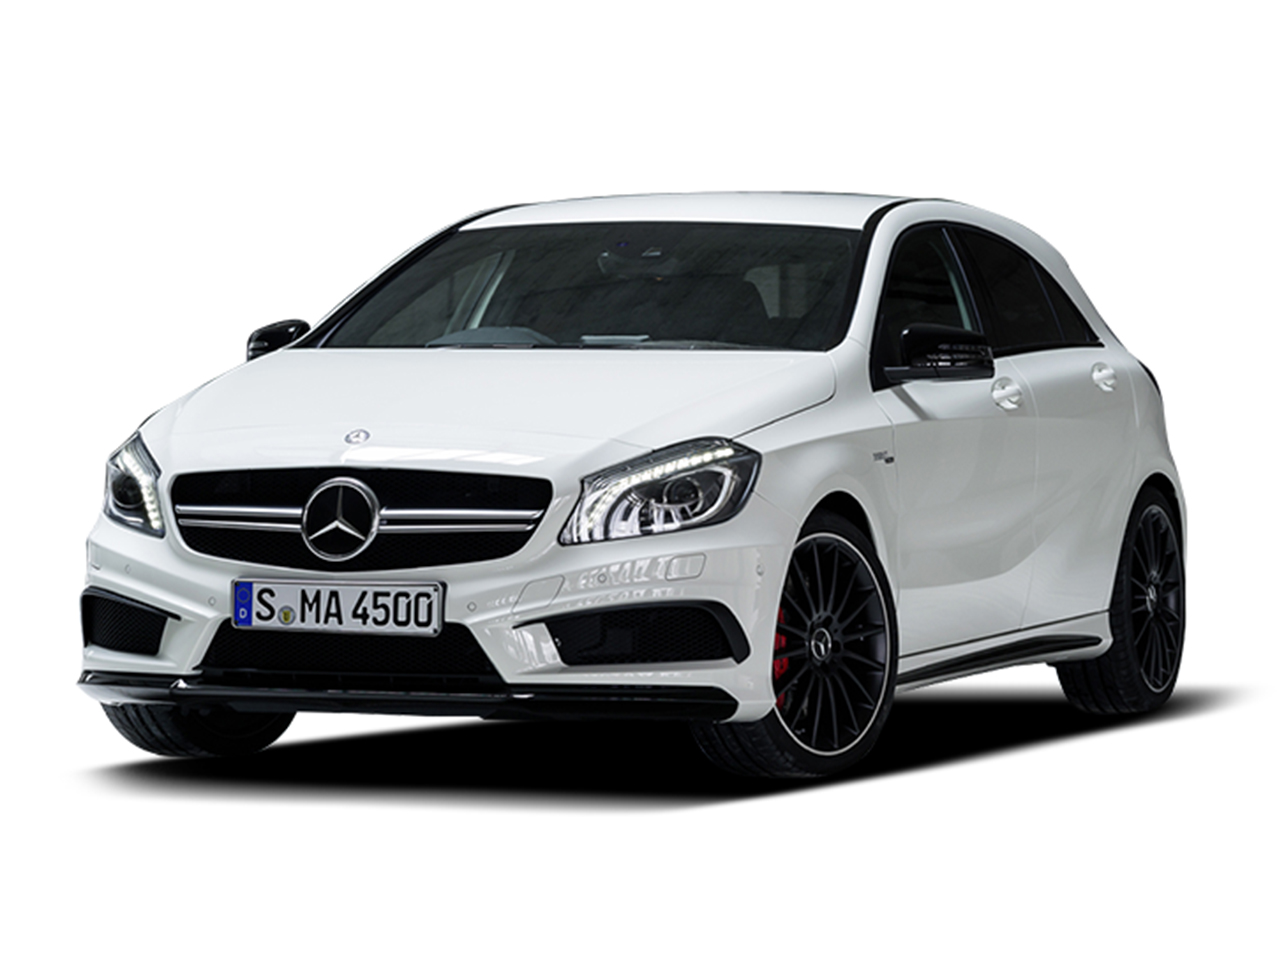 2018 mercedes benz a class prices in oman gulf specs for Mercedes benz a class price